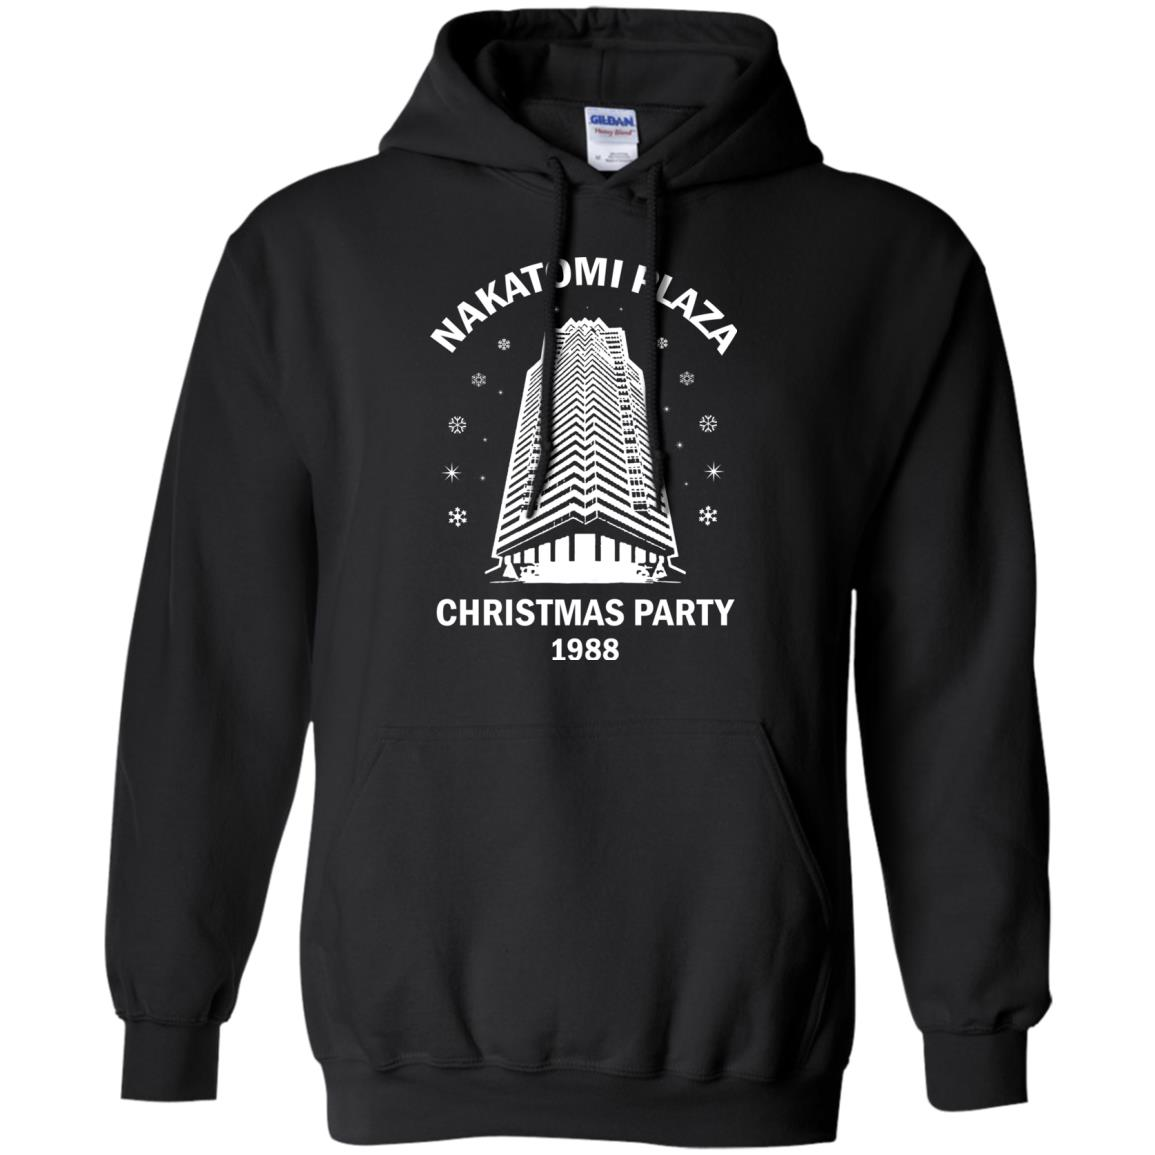 Nakatomi Plaza Christmas Party 1988 Sweater, Hoodie - Icestork